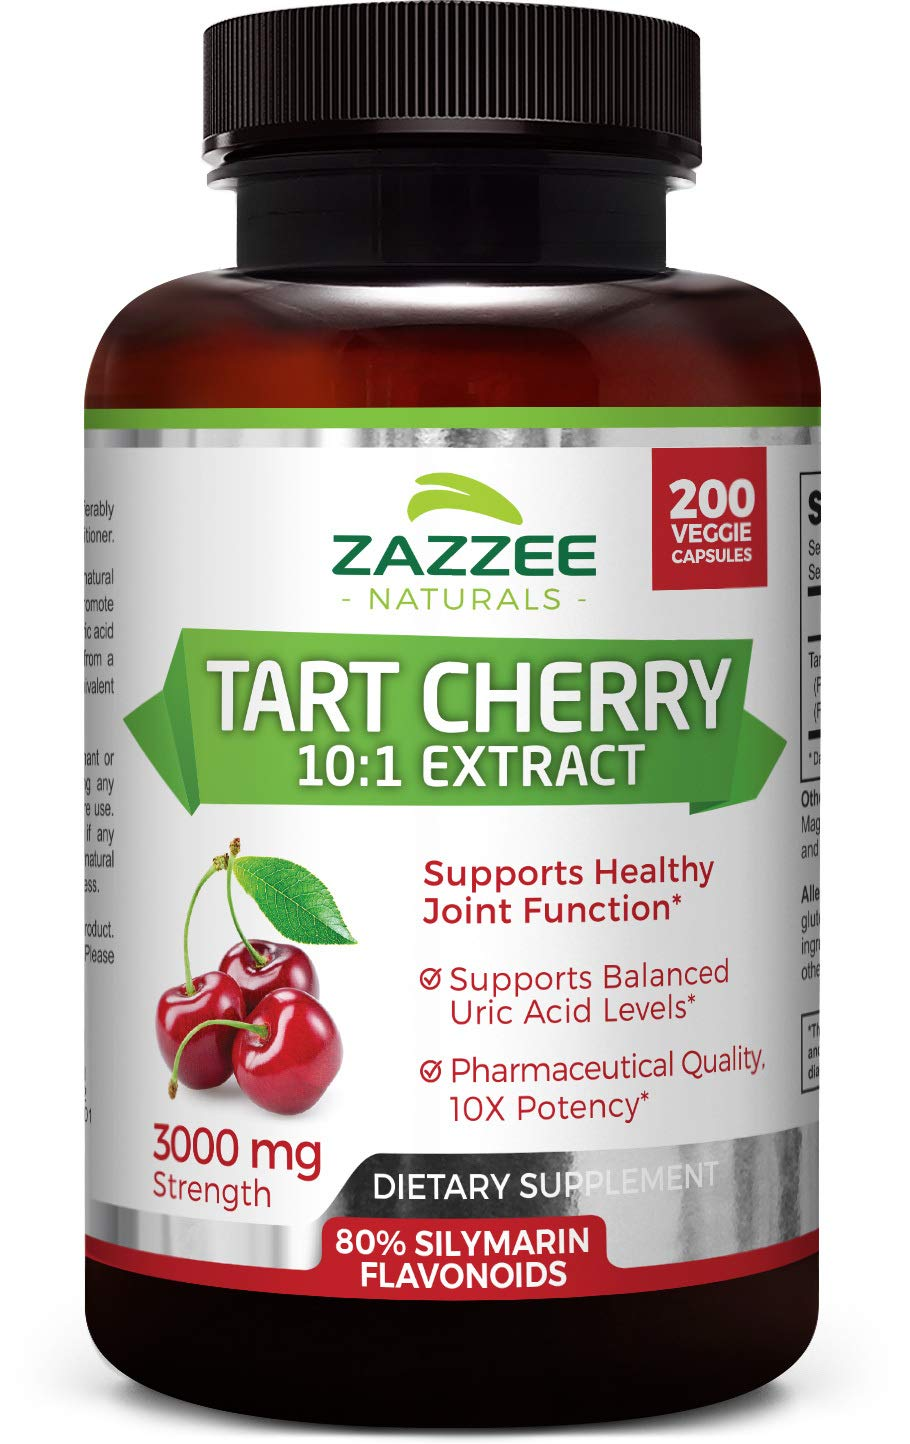 Zazzee Tart Cherry Extract Capsules, 200 Count, 3000 mg Strength, Potent 10:1 Extract, Over 6-Month Supply, Vegan, Non-GMO and All-Natural by Zazzee